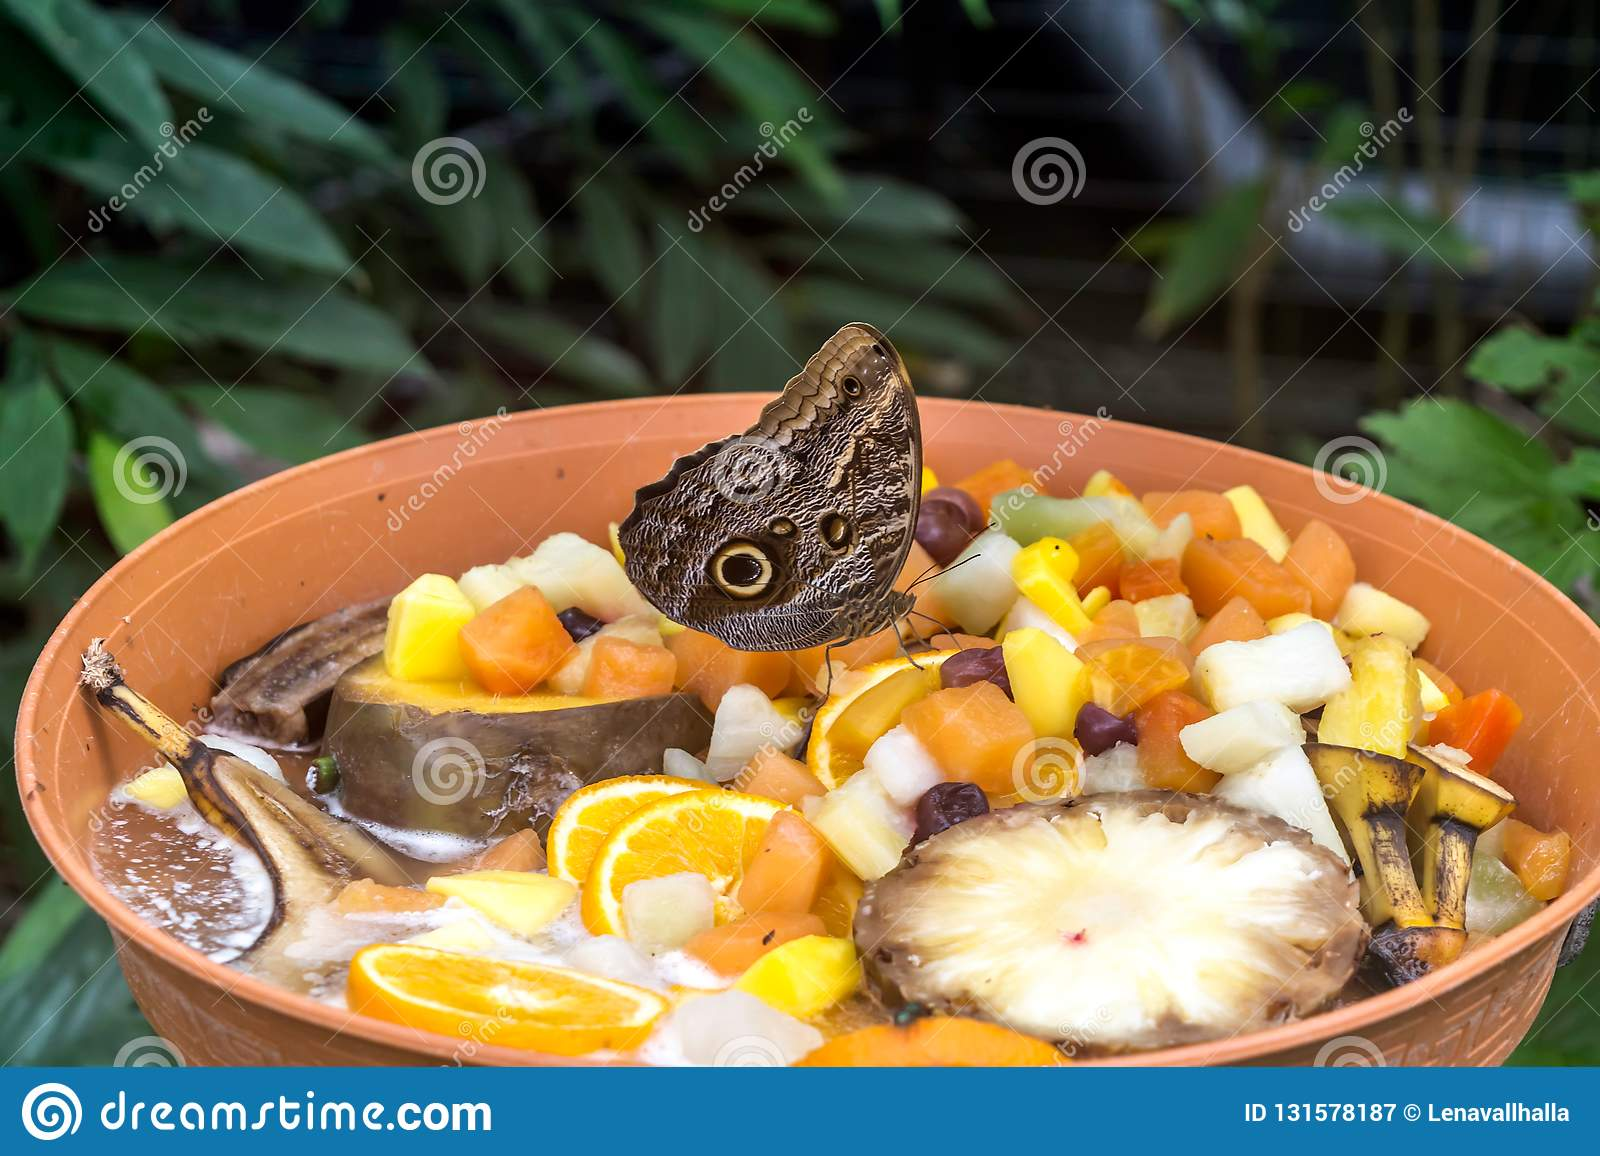 Caligo Eurilochus Butterfly Eating Fruits, Ventral View Stock Image